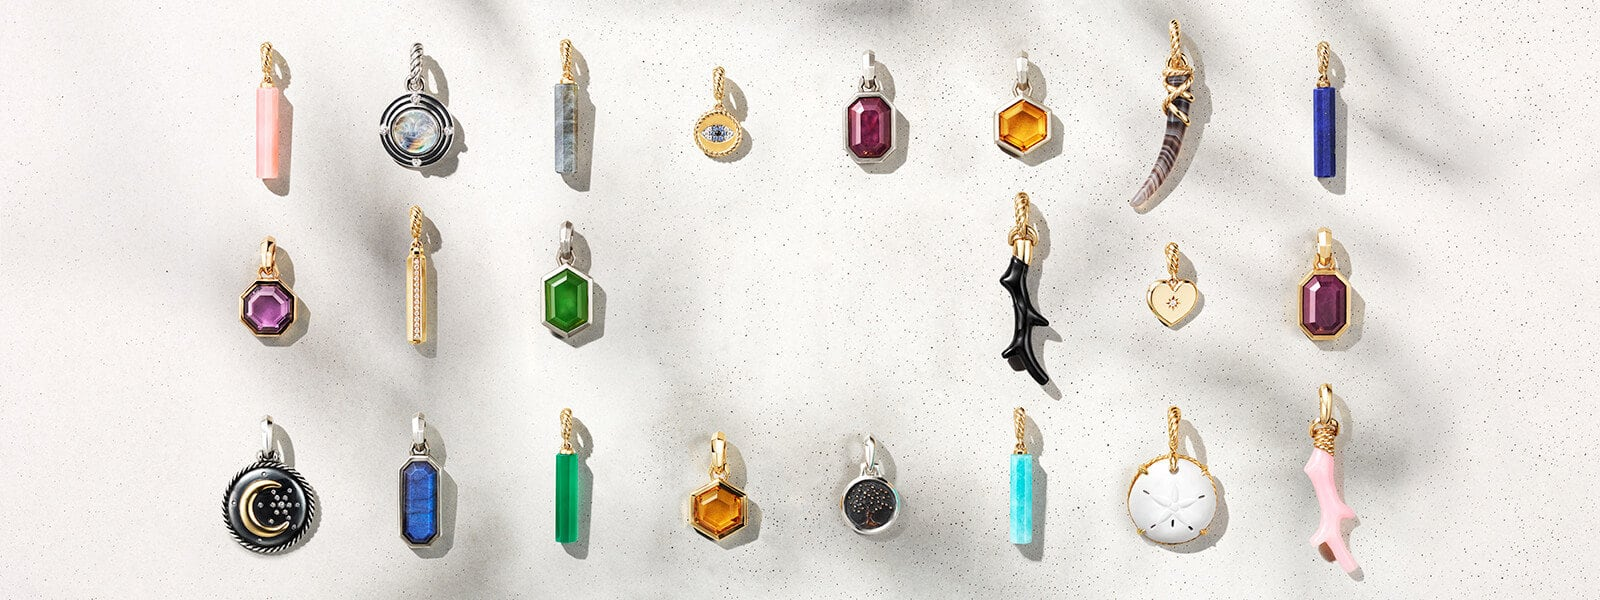 A horizontal grid of 22 amulet charms, in sterling silver or 18K yellow gold with a variety of different colored gemstones, on a white textured stone background with dark shadows.